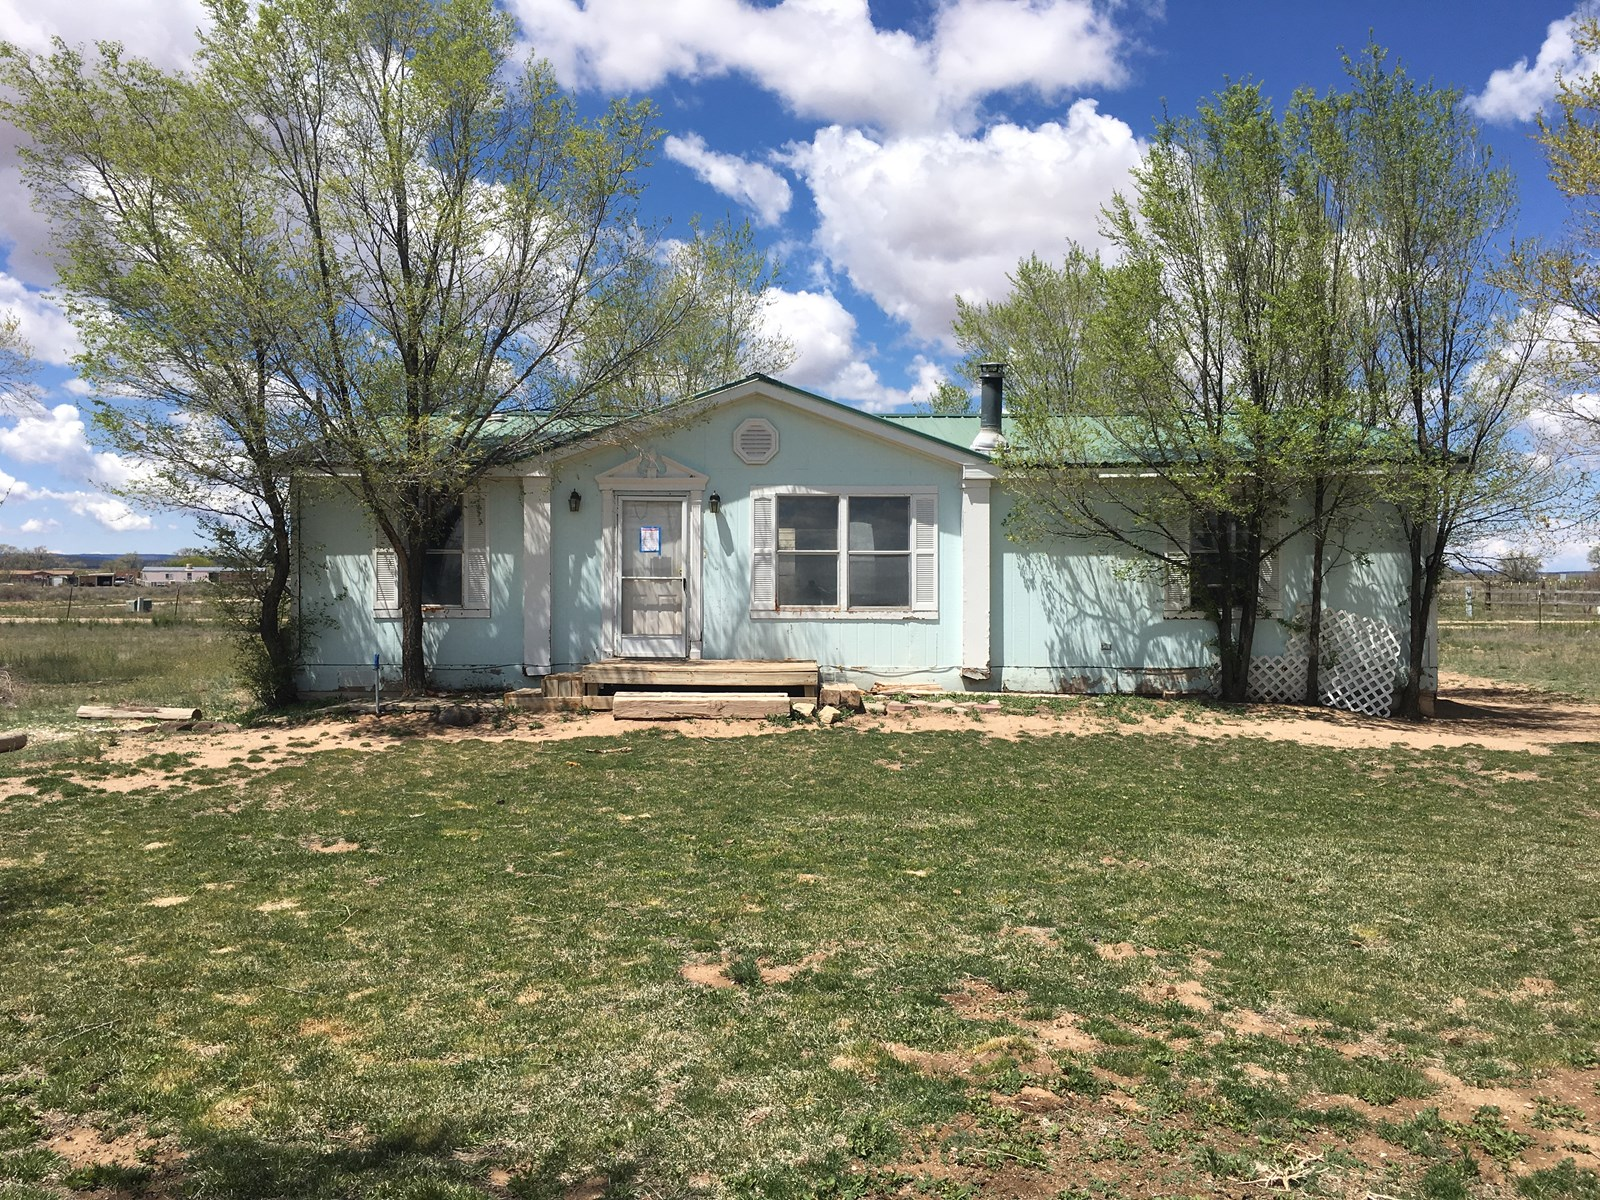 Central NM For Sale Manufactured Home with Acreage and Barn